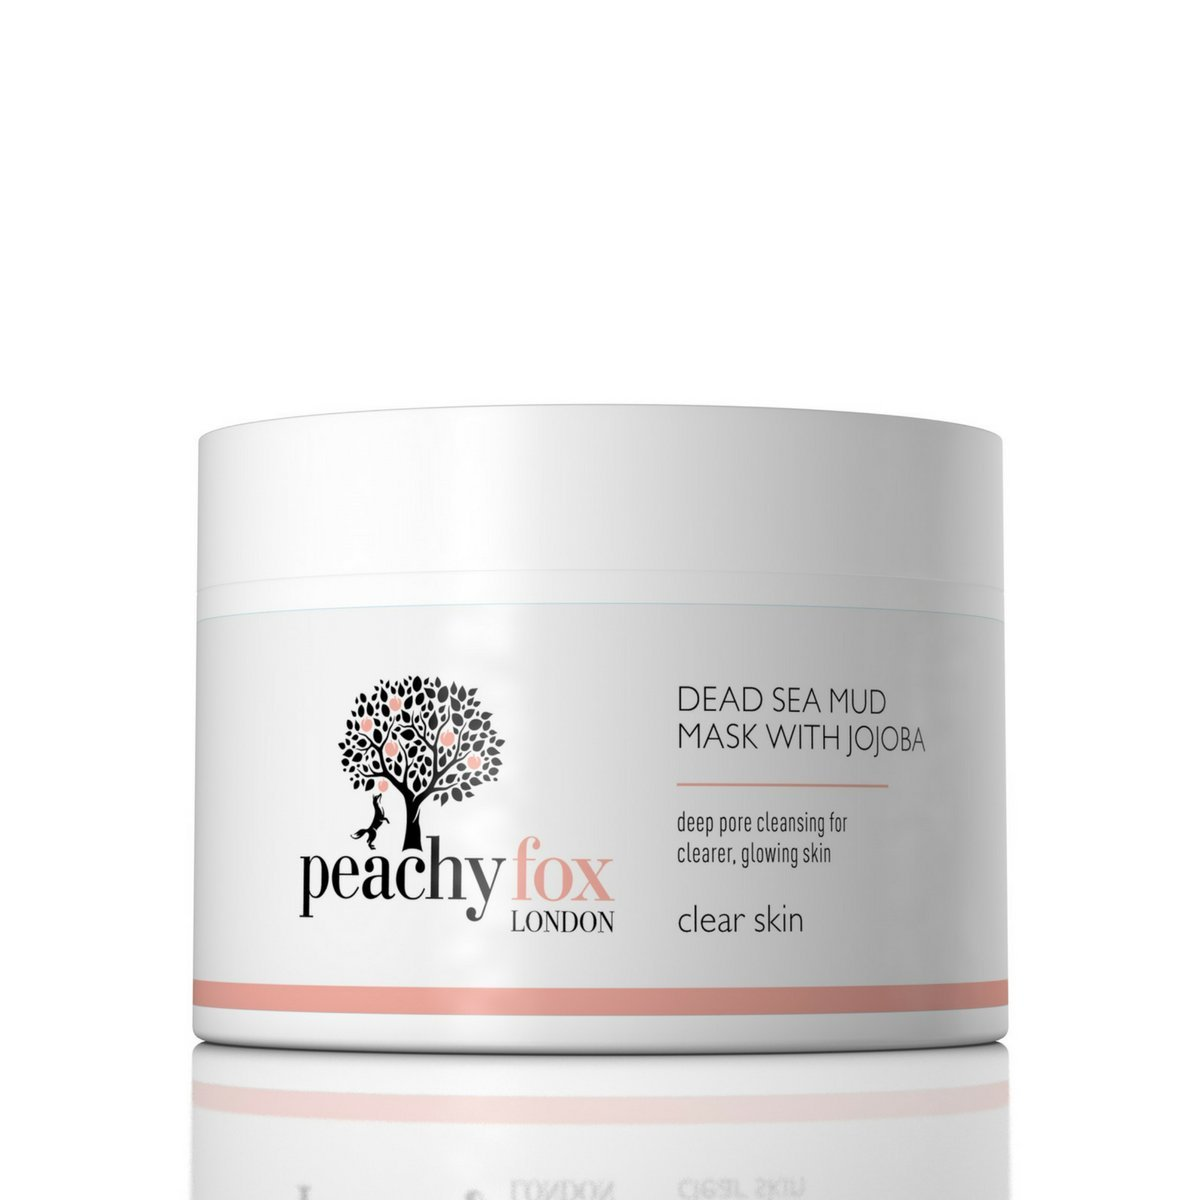 Dead Sea Mud anti-aging facial Mask with added Jojoba - Helps prevent breakouts & spots. Leaves your skin clean & clear with a healthy glow. Made in the UK, 30 day money back guarantee! Peachy Fox